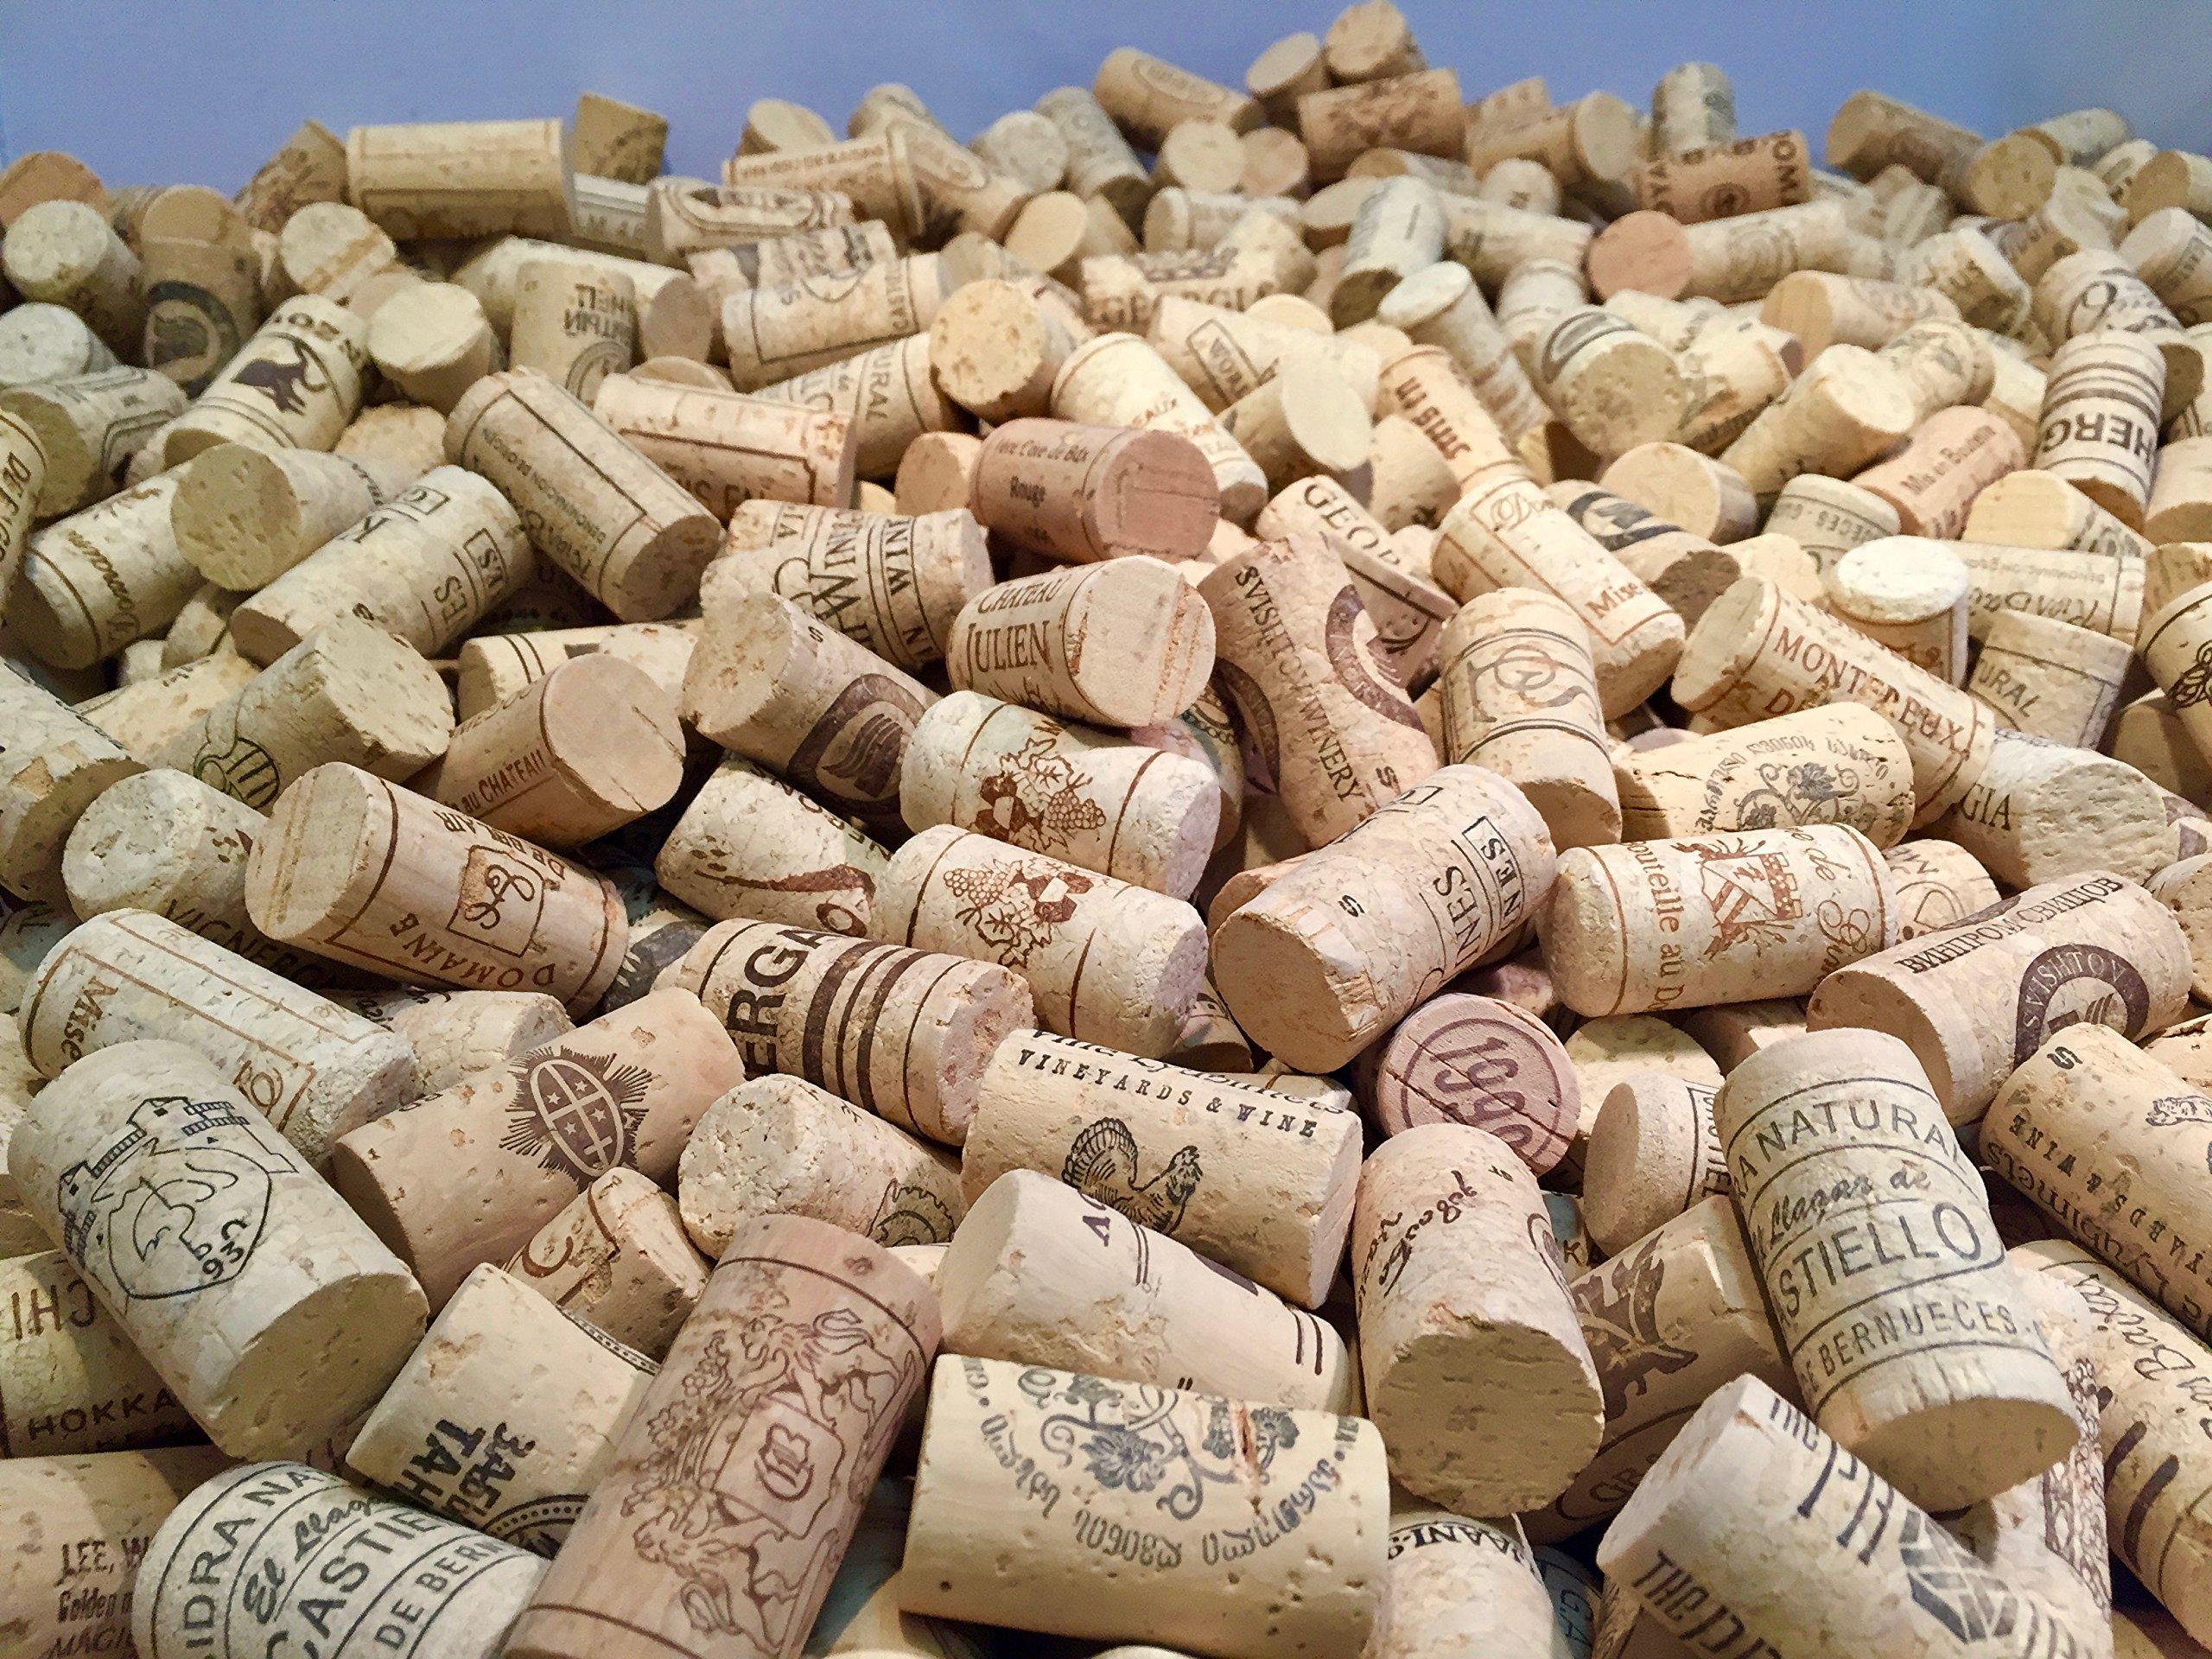 Wine Corks | Brand New, Authentic, All Natural | Printed, Winery-Marked, Craft Grade | Uncirculated, Uniform & Clean | Excellent for Crafting & Decor | Pack of 50/100/150/200 Premium Wine Corks (500) by Corkshire Hathaway (Image #5)